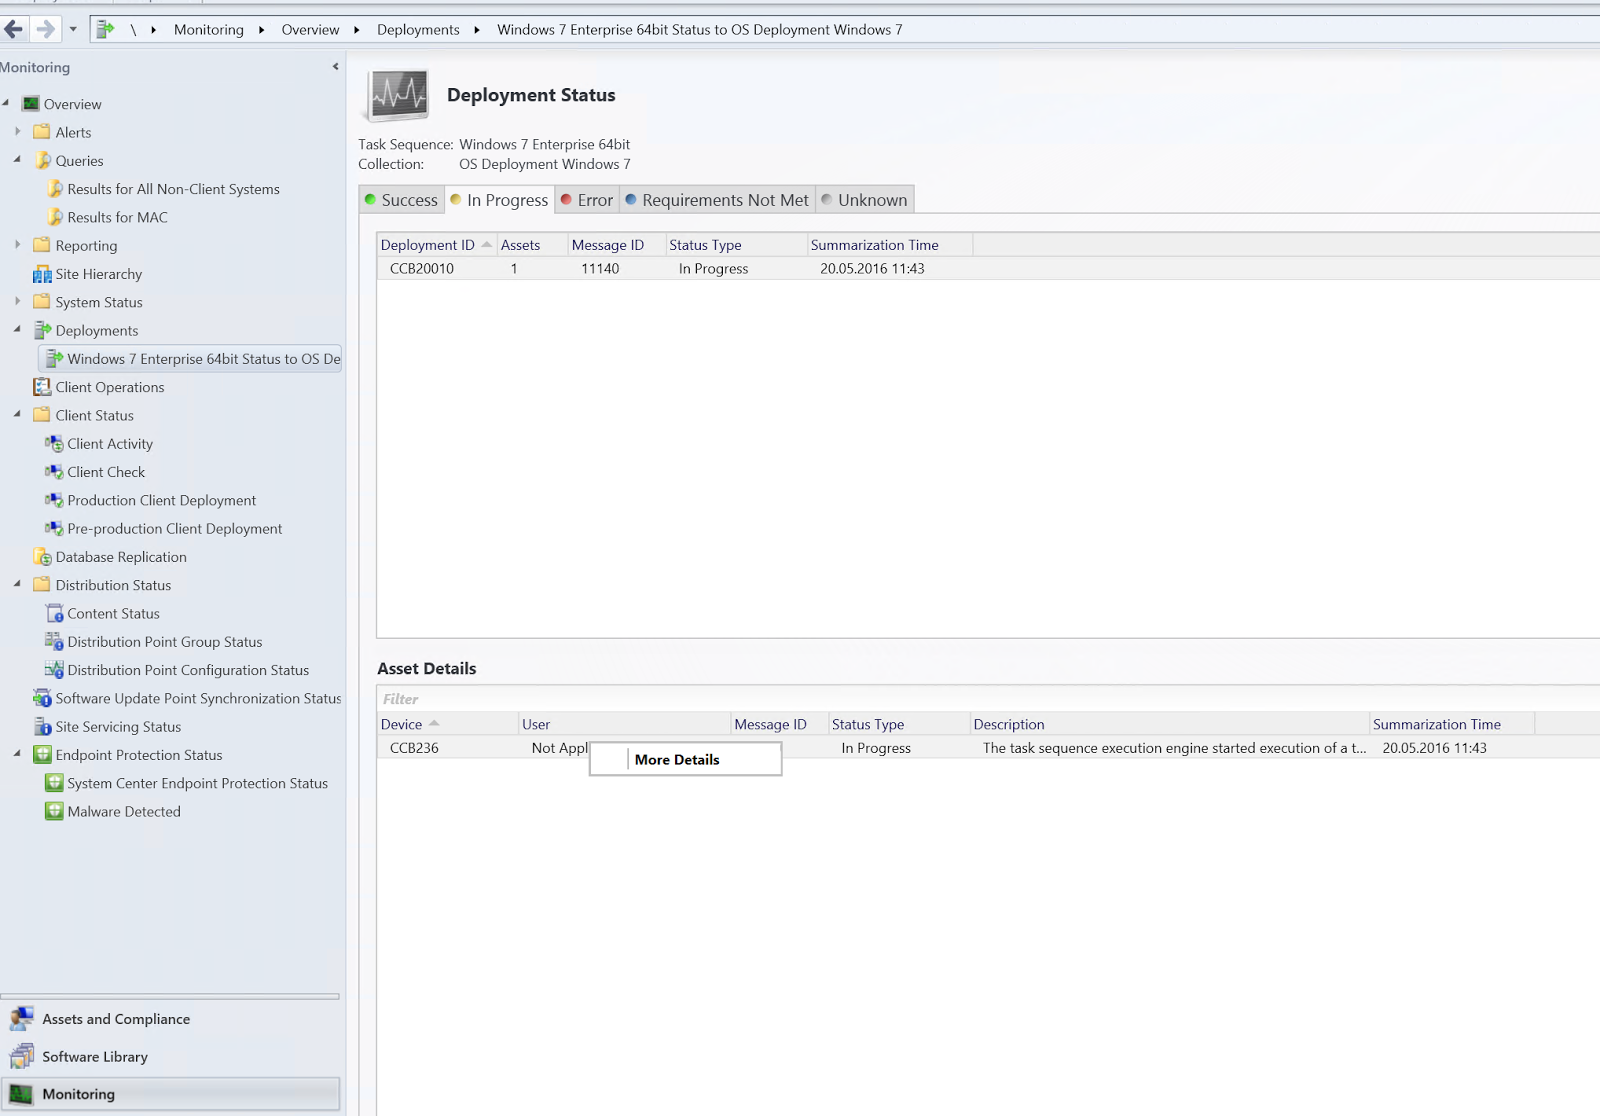 SCCM 1602 New Features   System Center Configuration Manager